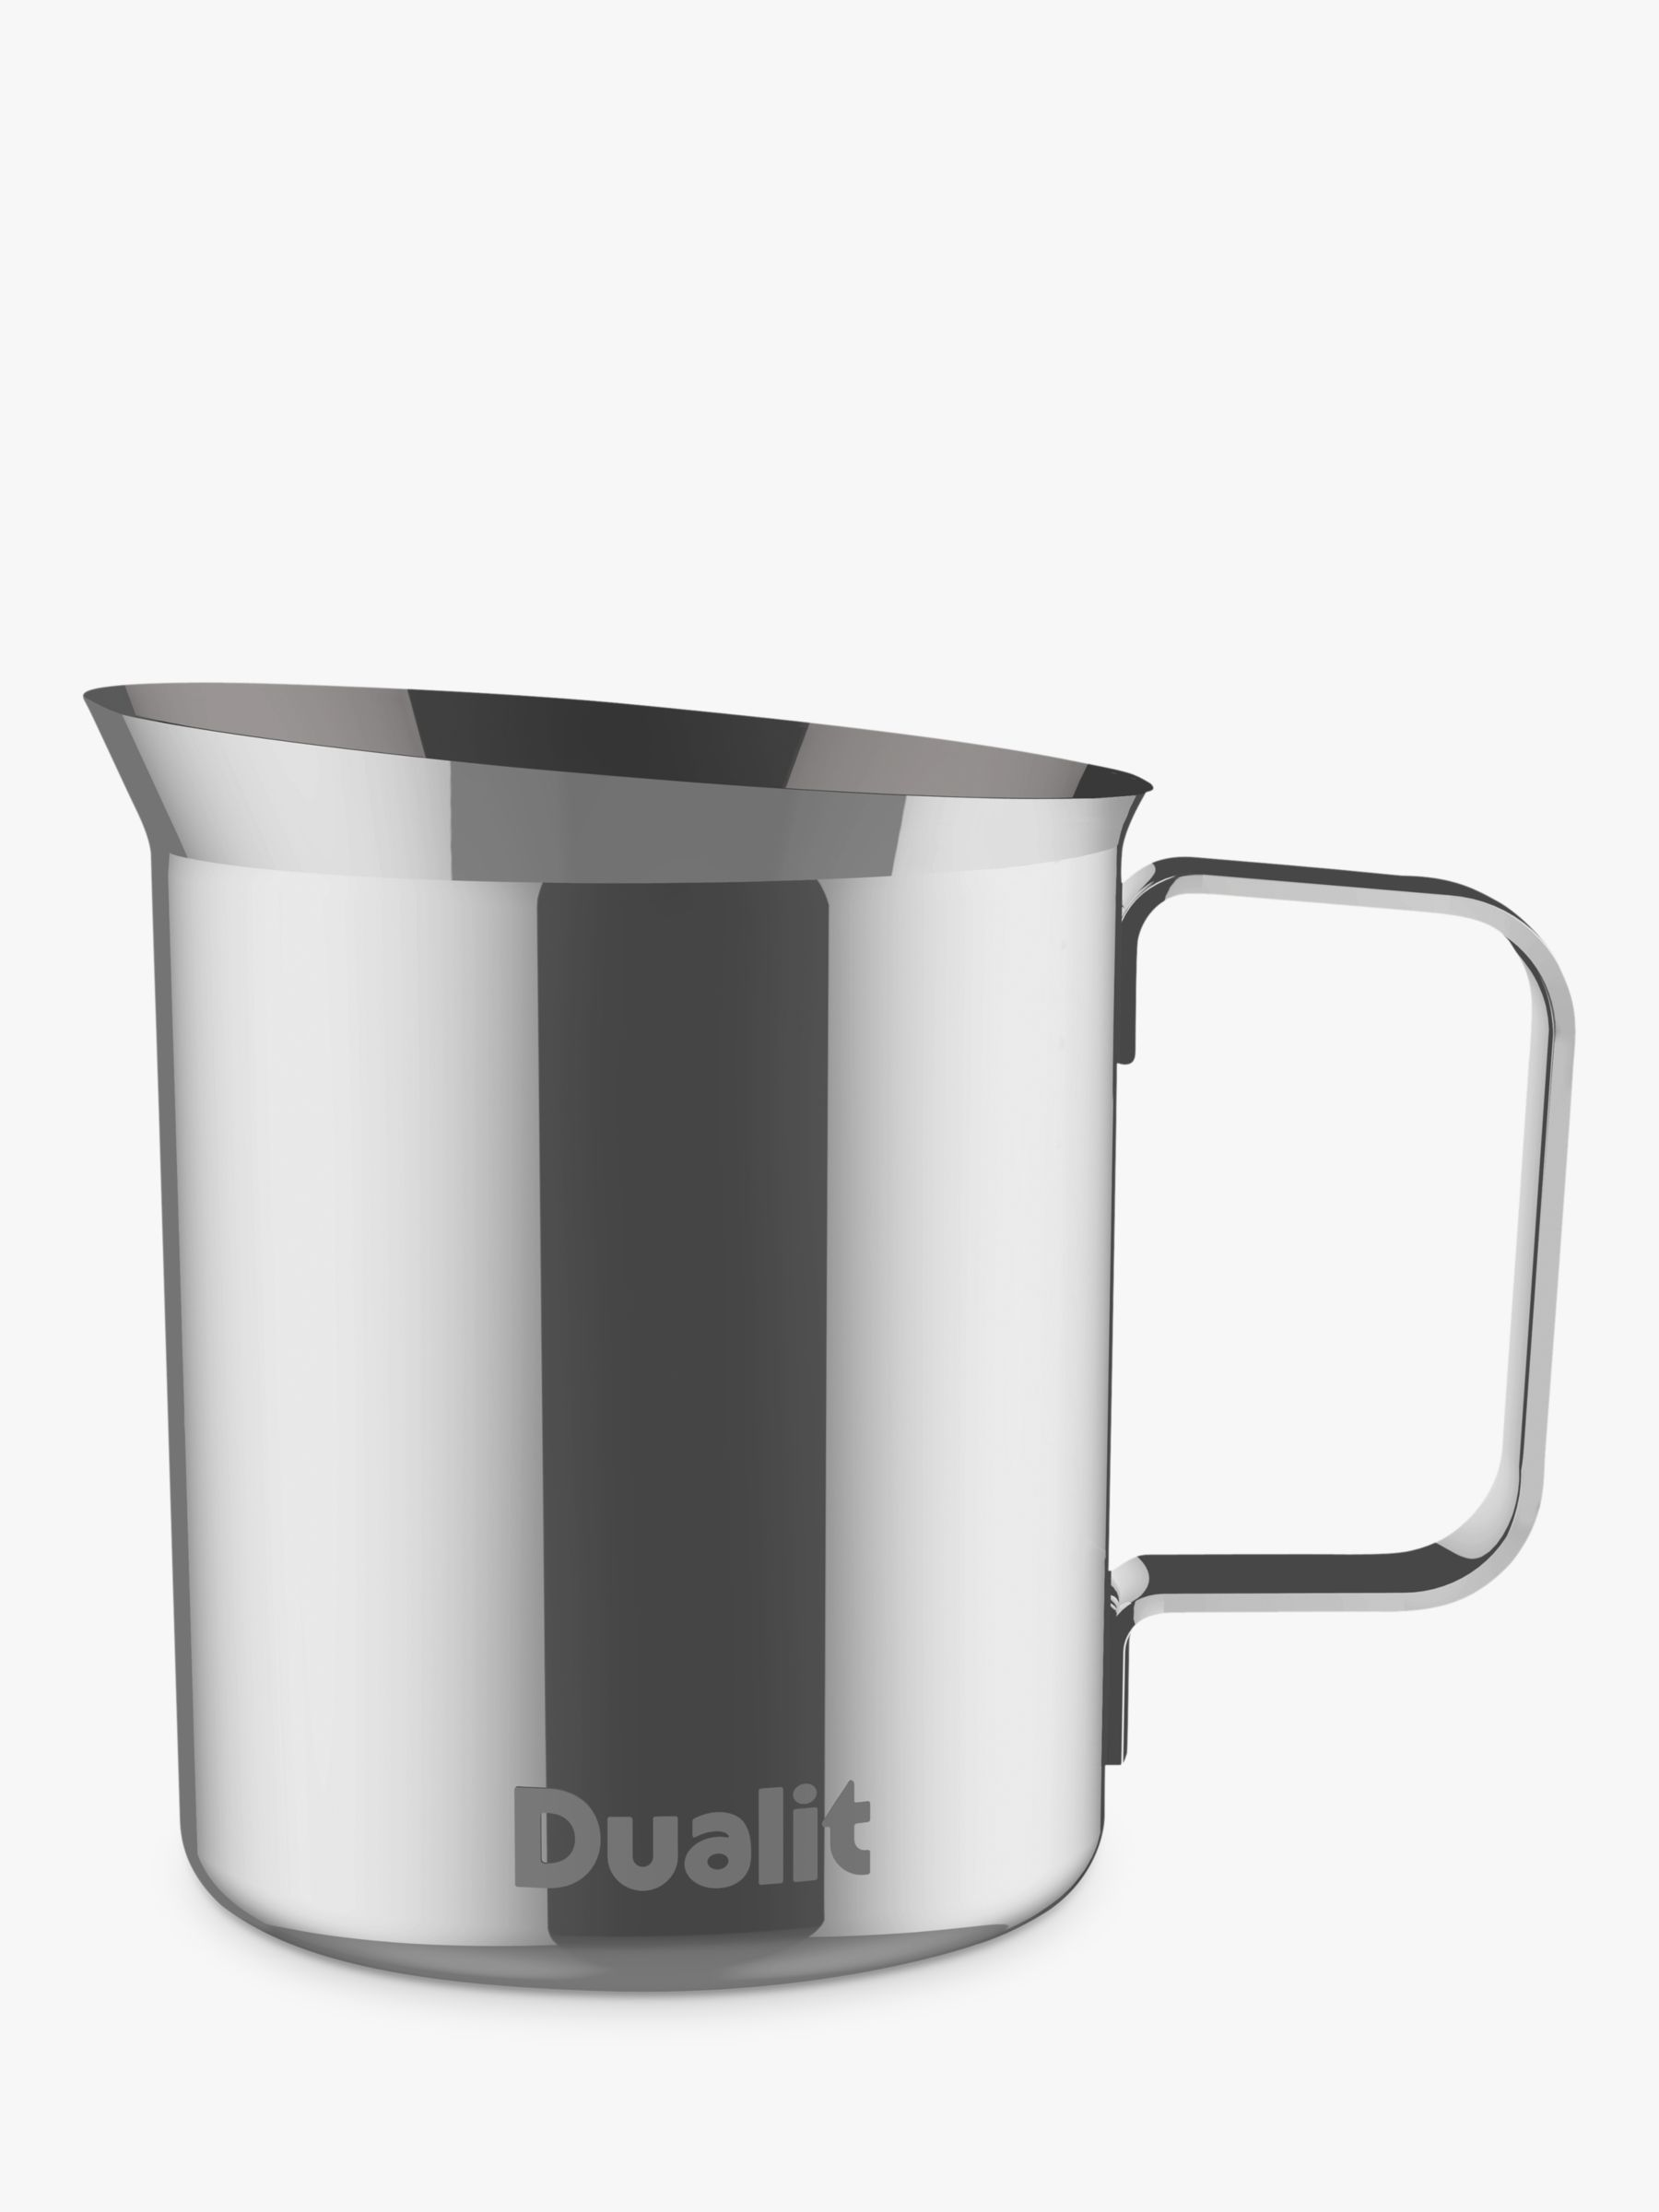 Dualit Dualit 85101 Stainless Steel Frothing Jug